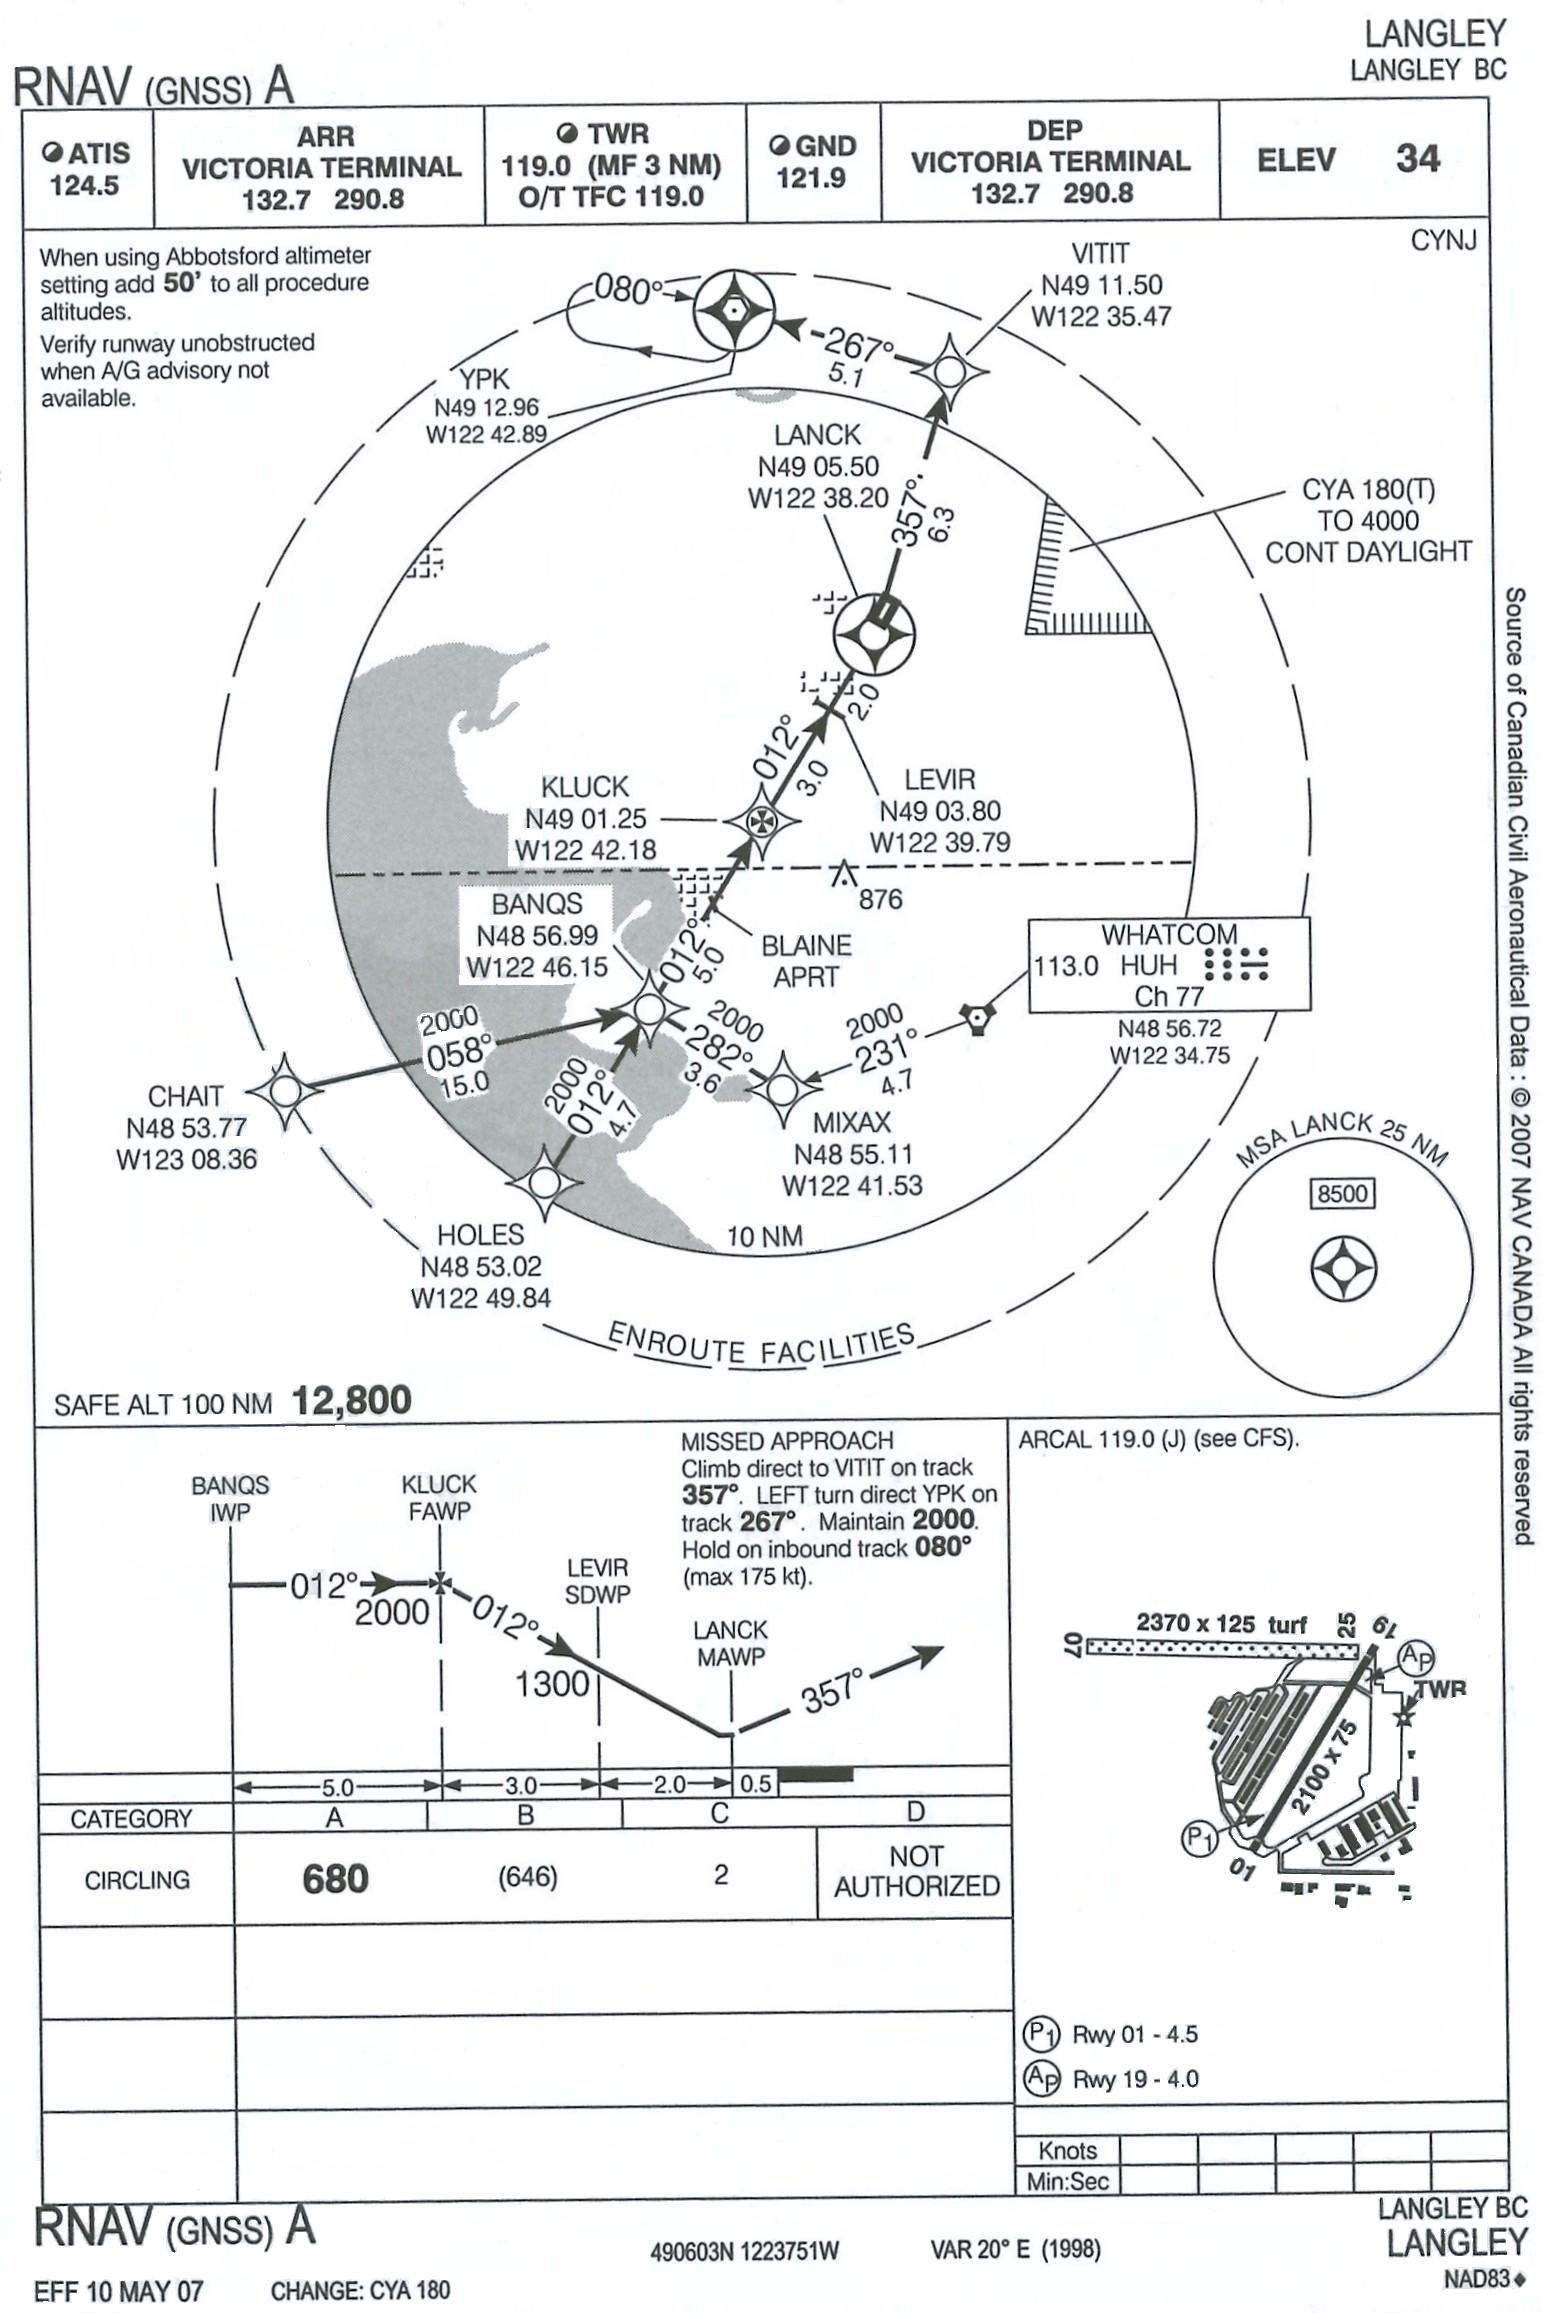 RNAV GPS A Langley Airport